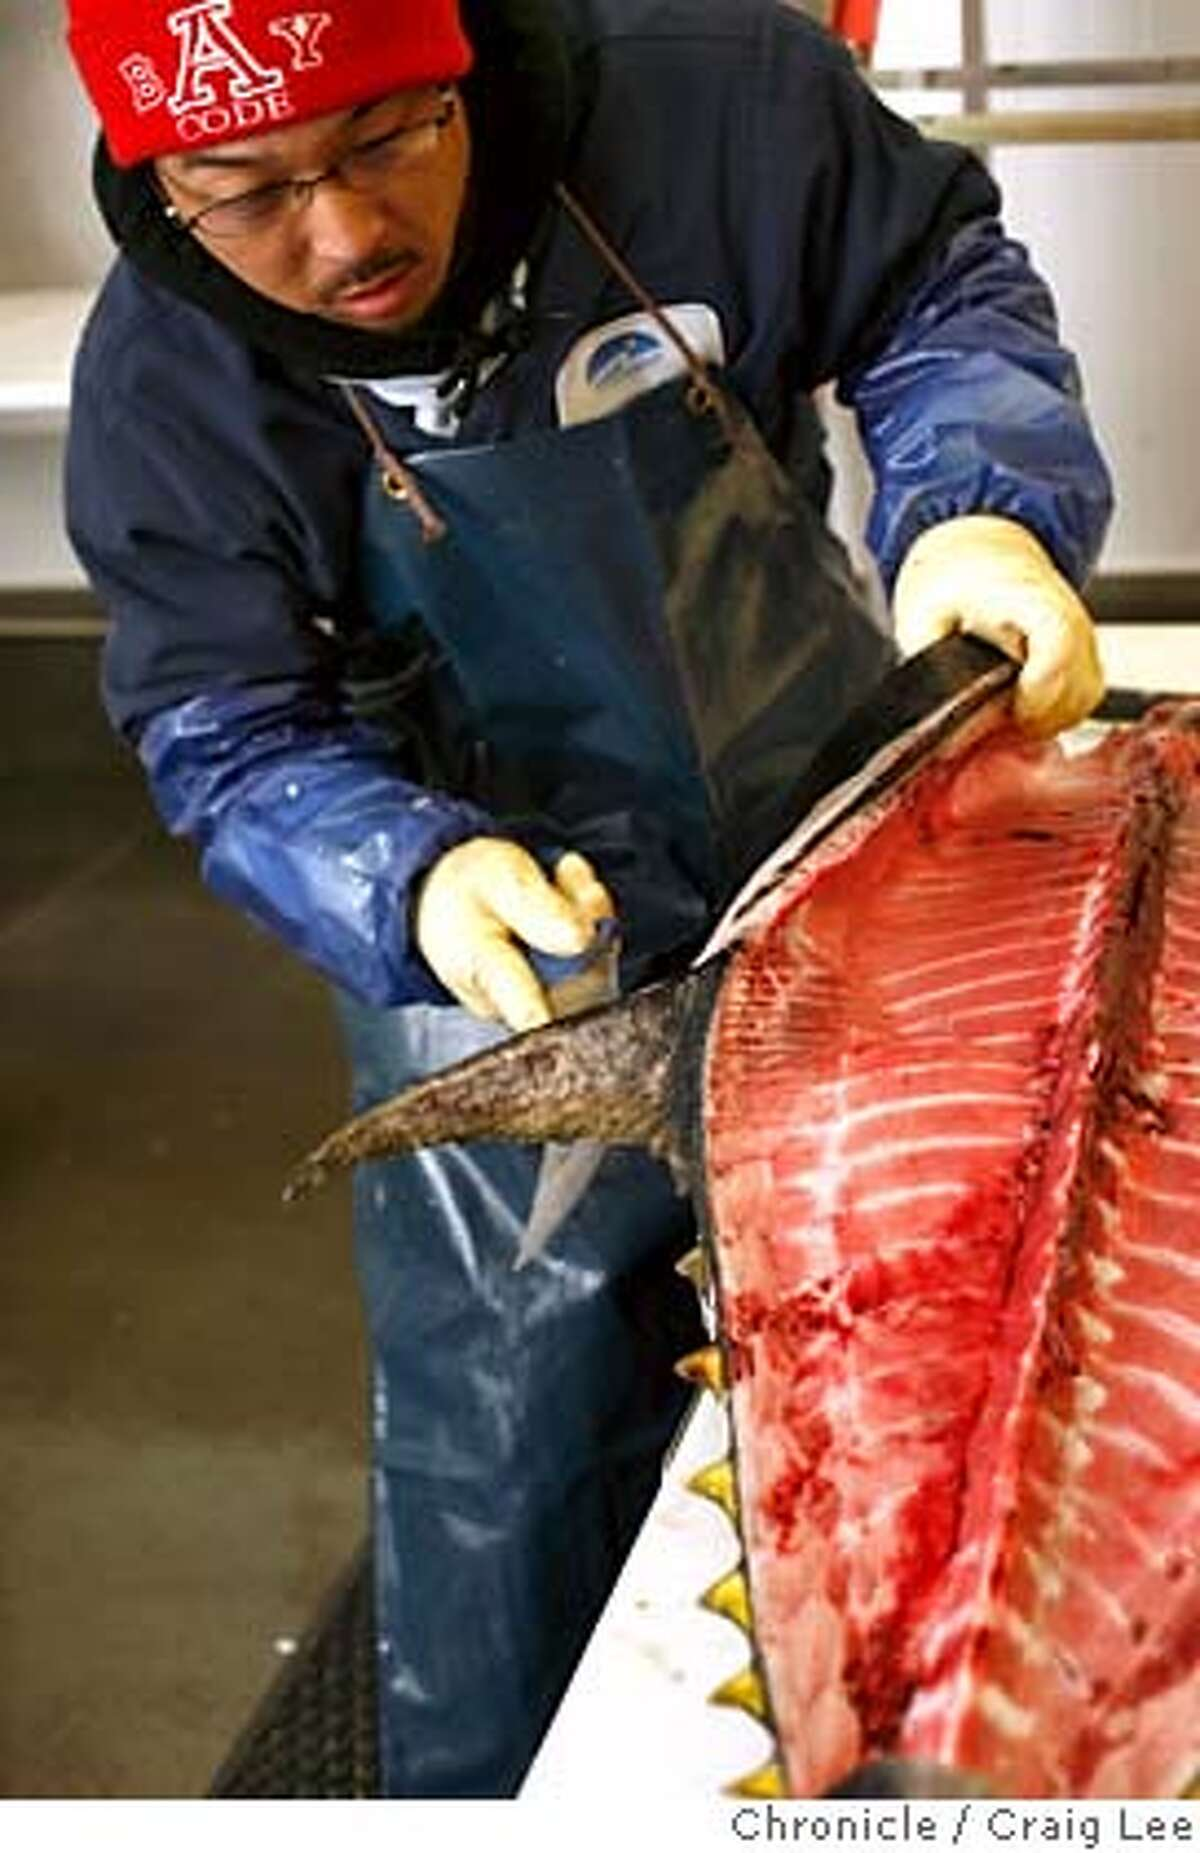 ###Live Caption:A Kindai farmed-raised bluefin tuna imported from Japan at IMP Seafood Importers in Hayward, Calif., on May 1, 2008. James Shimizu is carving the bluefin tuna into pieces for different restaurants. This is a new, very expensive fish that's being used by high-end sushi bars and restaurants because of it's very low mercury content. Photo by Craig Lee / The San Francisco Chronicle###Caption History:A Kindai farmed-raised bluefin tuna imported from Japan at IMP Seafood Importers in Hayward, Calif., on May 1, 2008. James Shimizu is carving the bluefin tuna into pieces for different restaurants. This is a new, very expensive fish that's being used by high-end sushi bars and restaurants because of it's very low mercury content. Photo by Craig Lee / The San Francisco Chronicle###Notes:Craig Lee 415-218-8597 clee@sfchronicle.com###Special Instructions:MANDATORY CREDIT FOR PHOTOG AND SF CHRONICLE/NO SALES-MAGS OUT